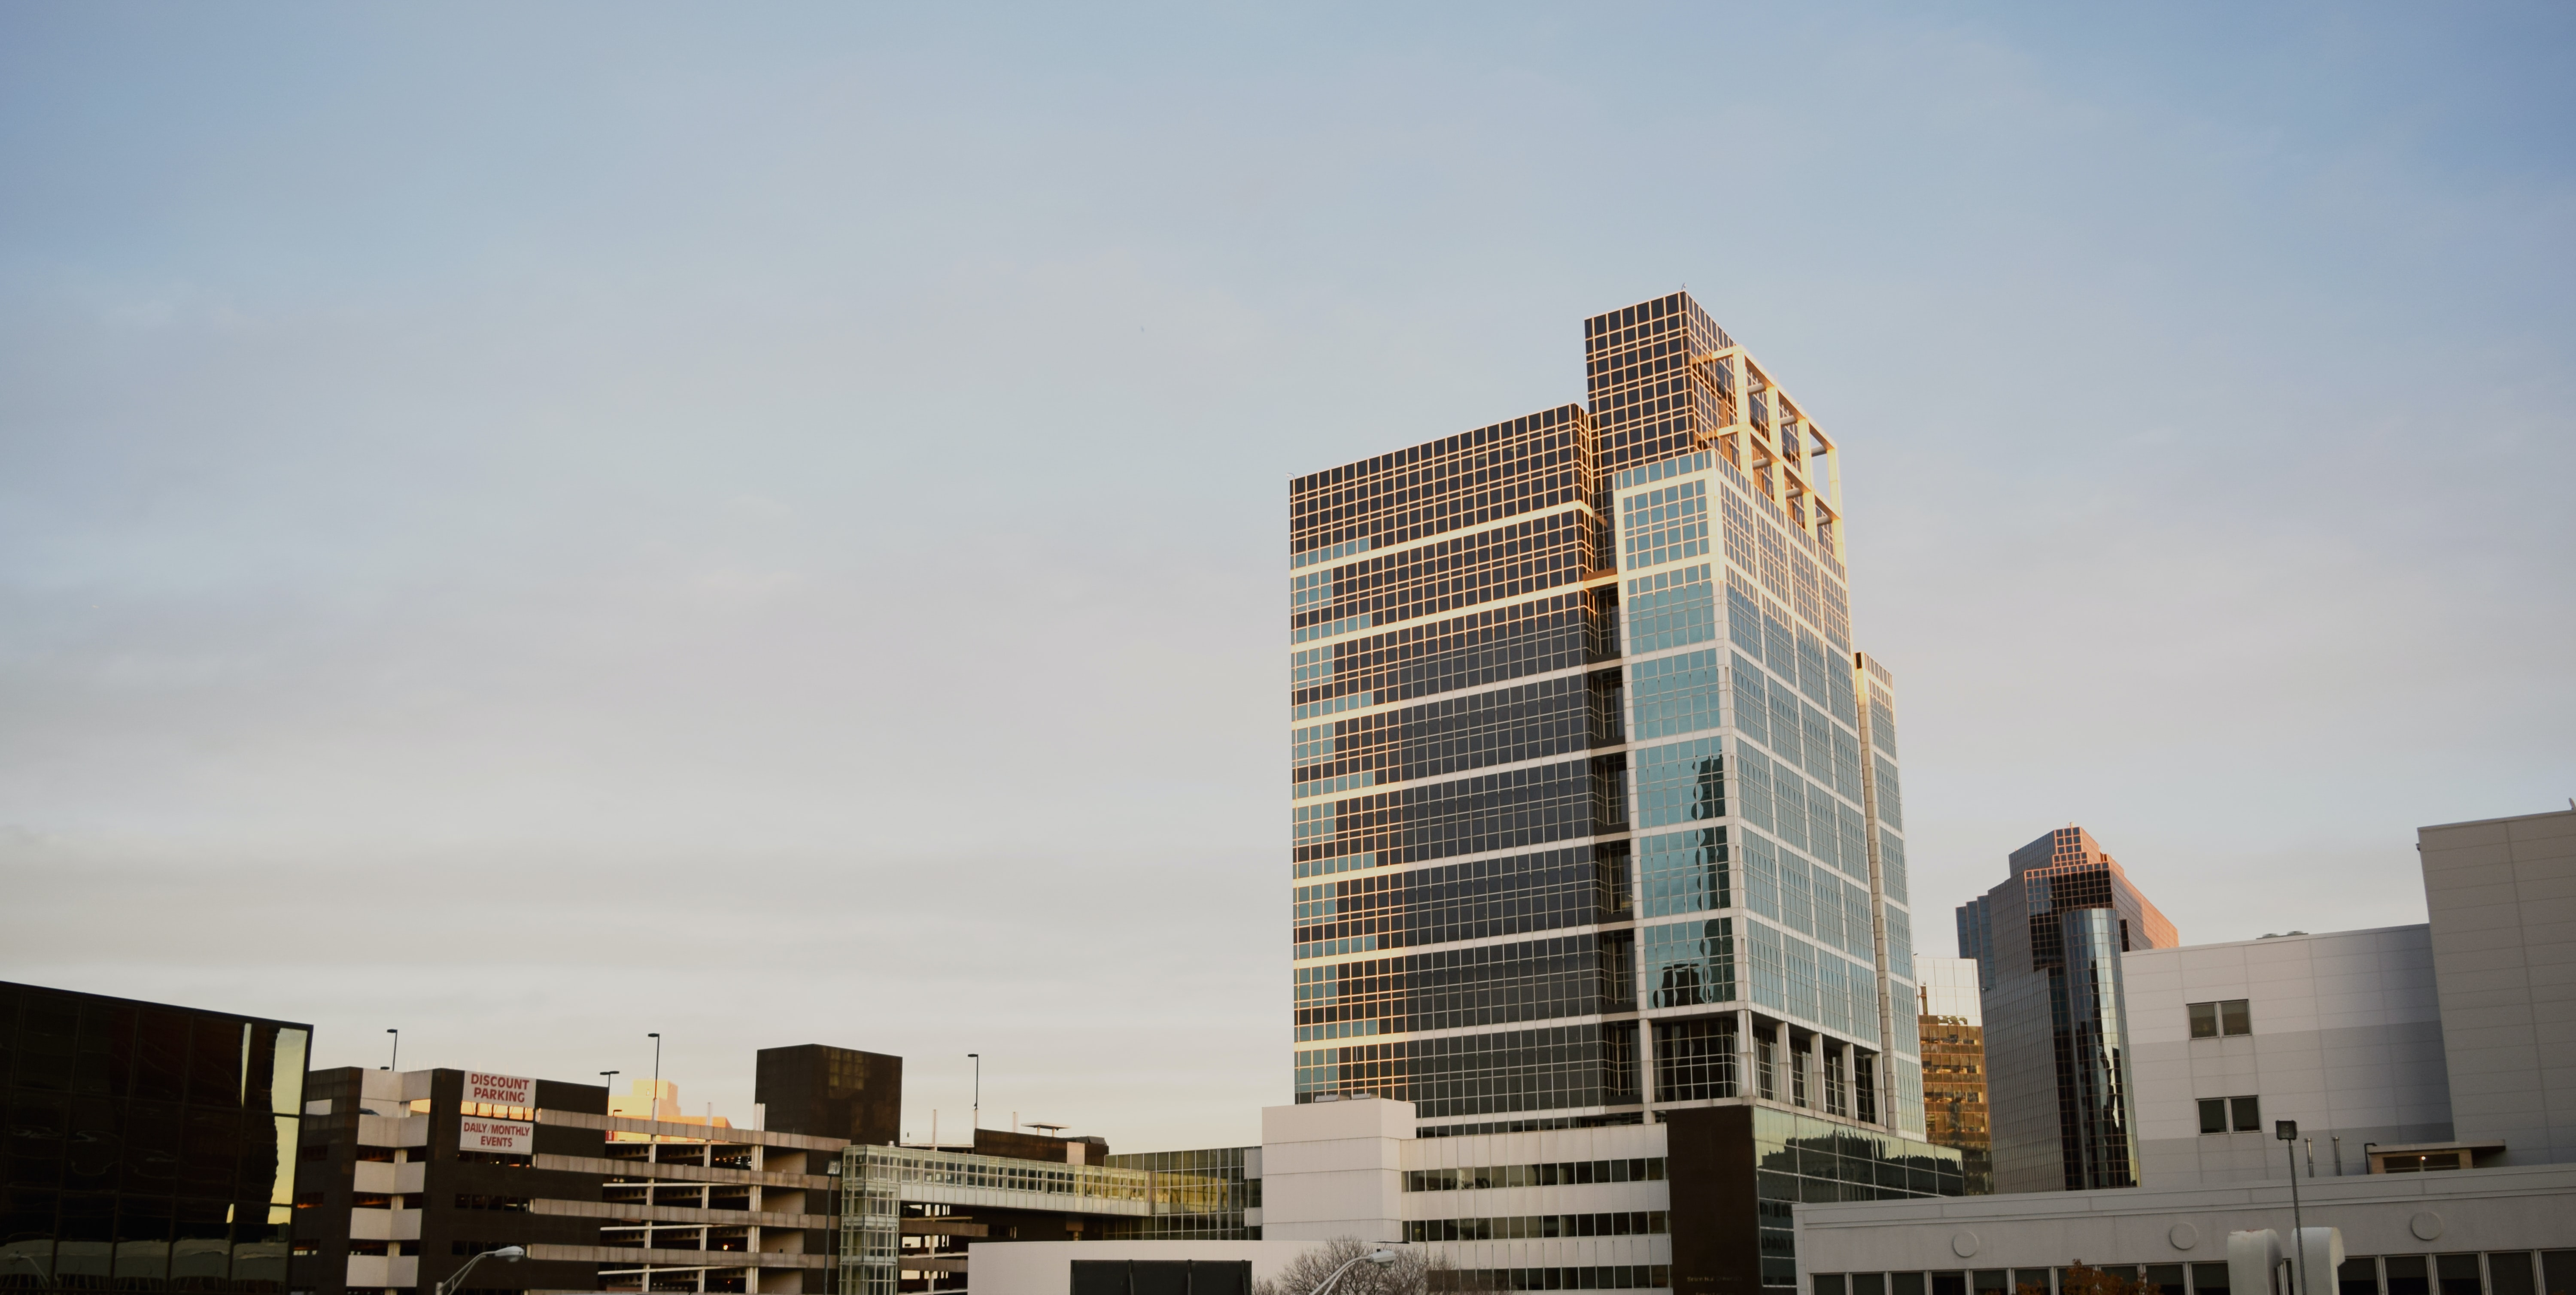 Office buildings and multi-story parking lots in Newark